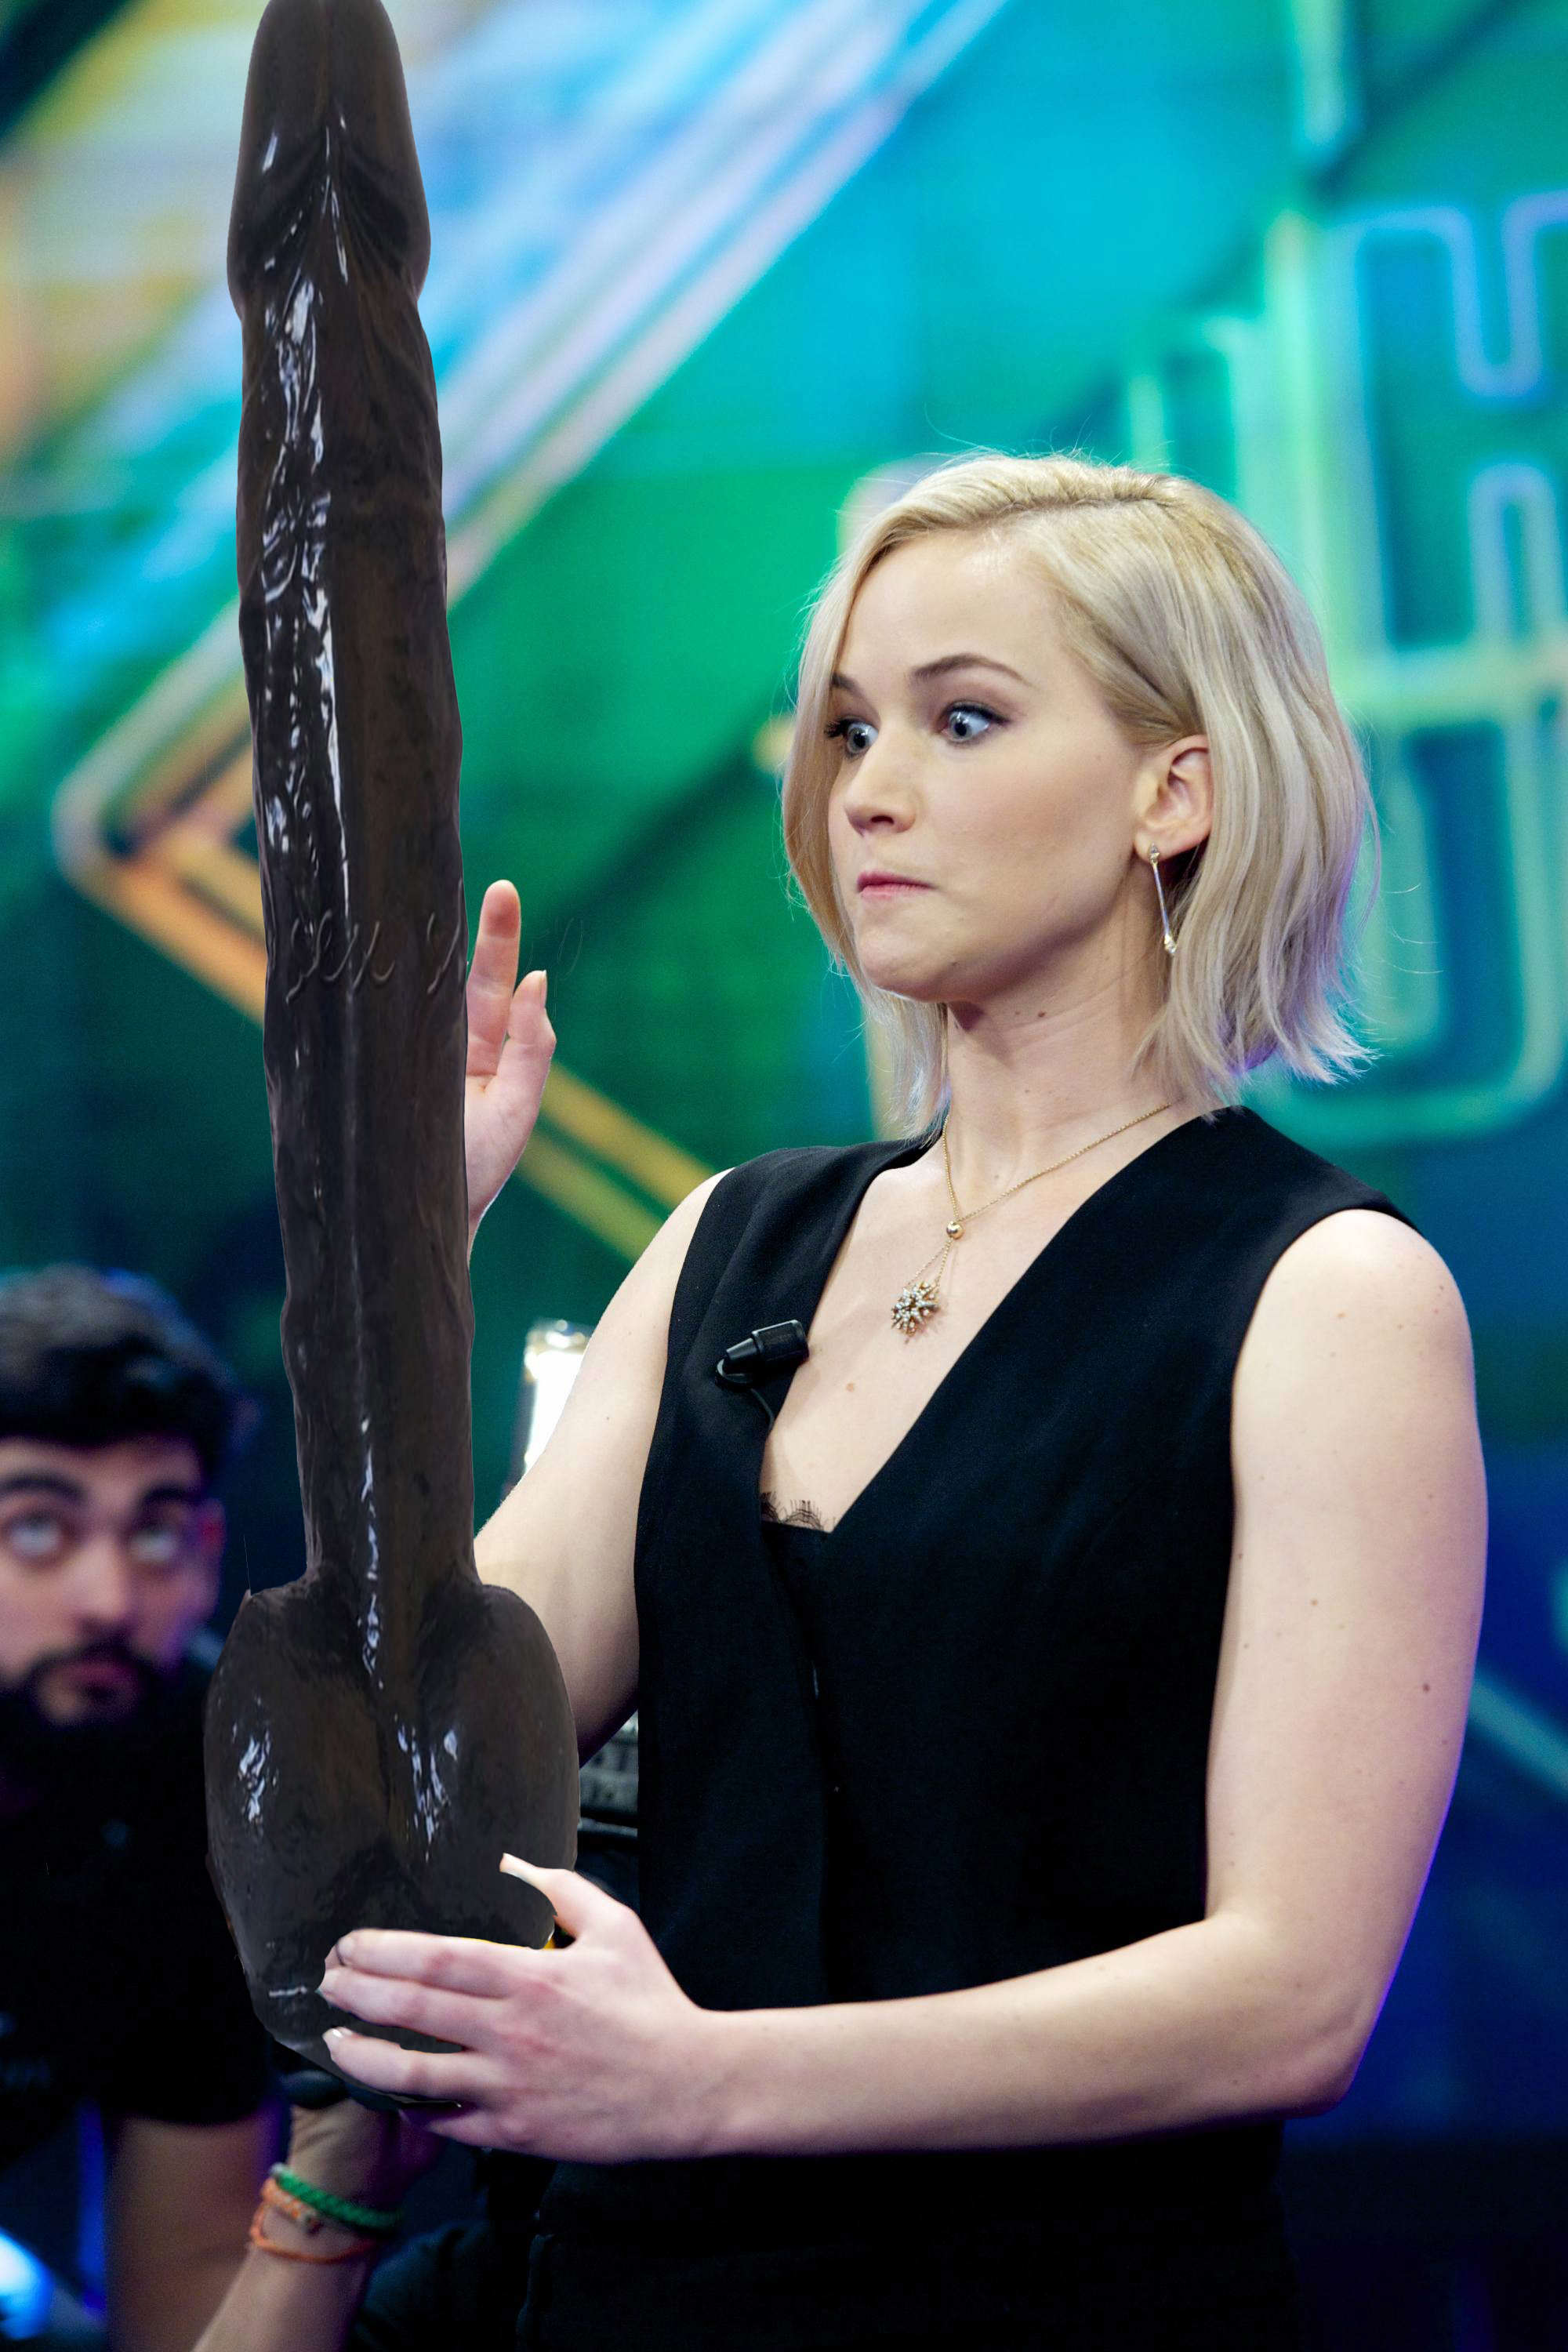 jlaw13 Photoshop Battle Of Jennifer Lawrence Holding A Tape Measure Is Genius